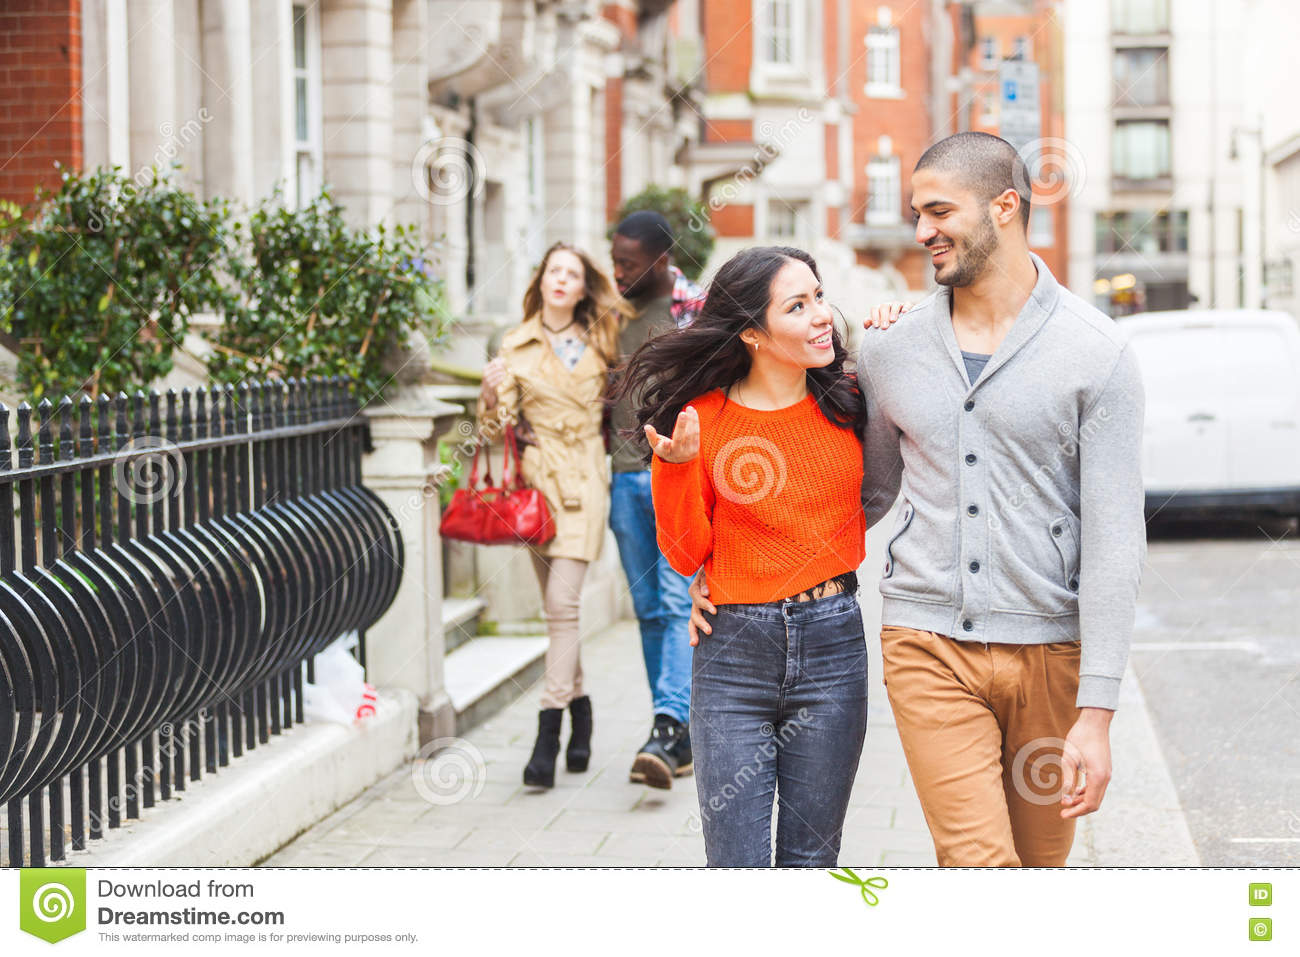 Group of diverse people talking together Photo   Premium ...  Multicultural People Talking Together